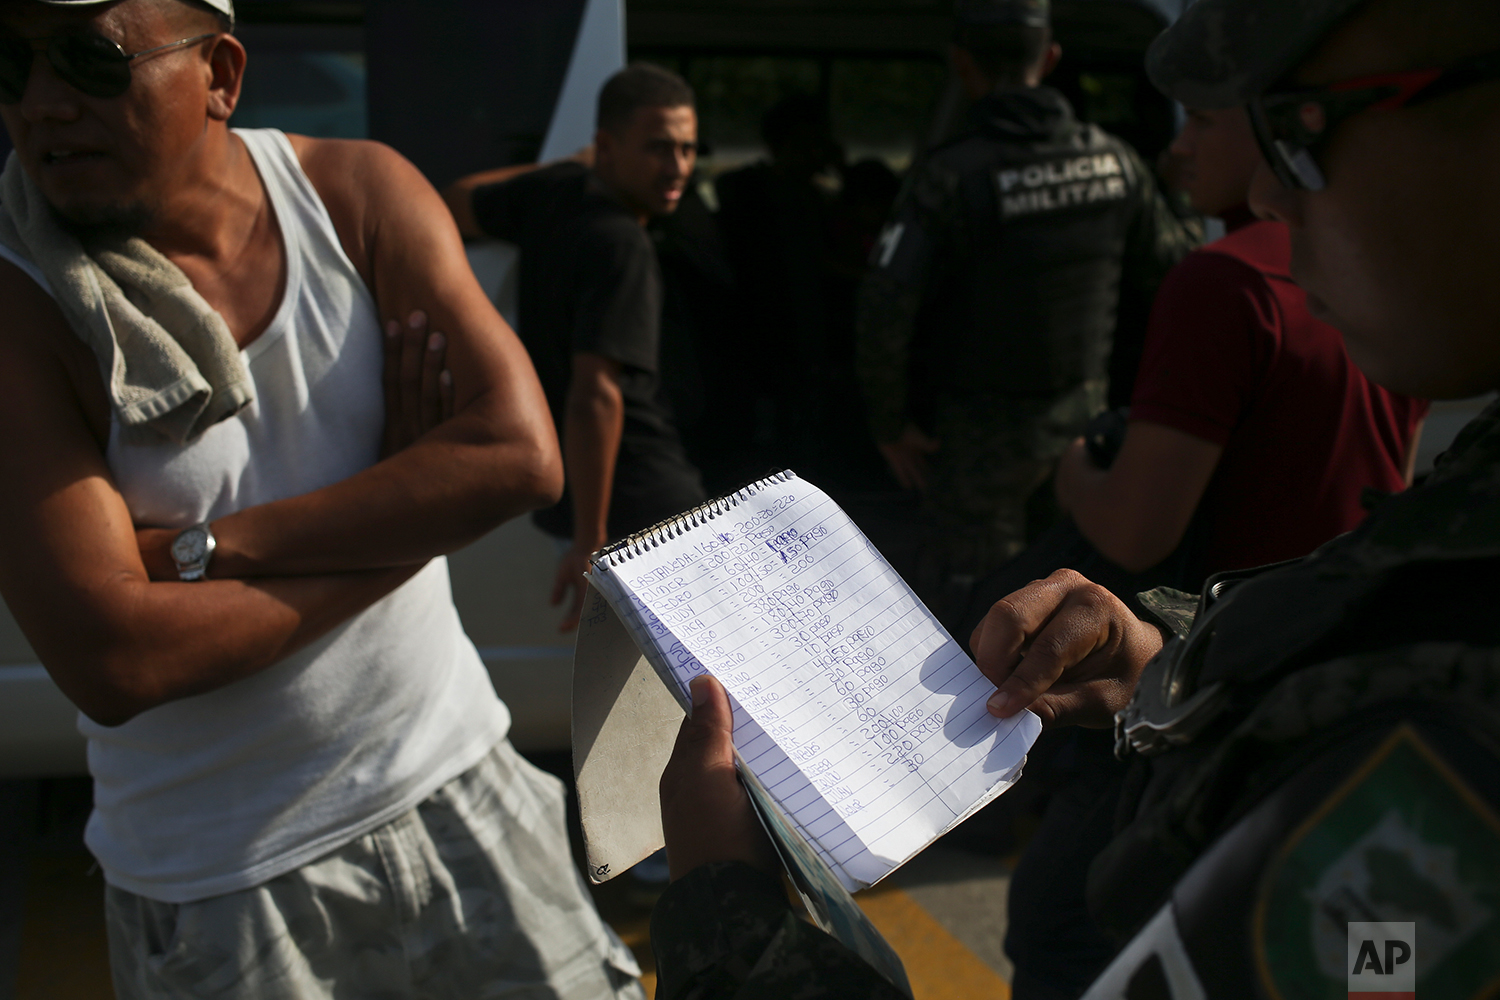 In this July 4, 2018 photo, a military police officer looks at a notebook found hidden inside a public bus, as he searches several men who were the bus in San Pedro Sula, Honduras. The notebook, which no one claimed to be the owner of, appears to list names and extortion payments, due and paid, by shop owners, drivers, etc. No one was detained during the search of bus passengers, but the notebook was confiscated by police. (AP Photo/Esteban Felix)